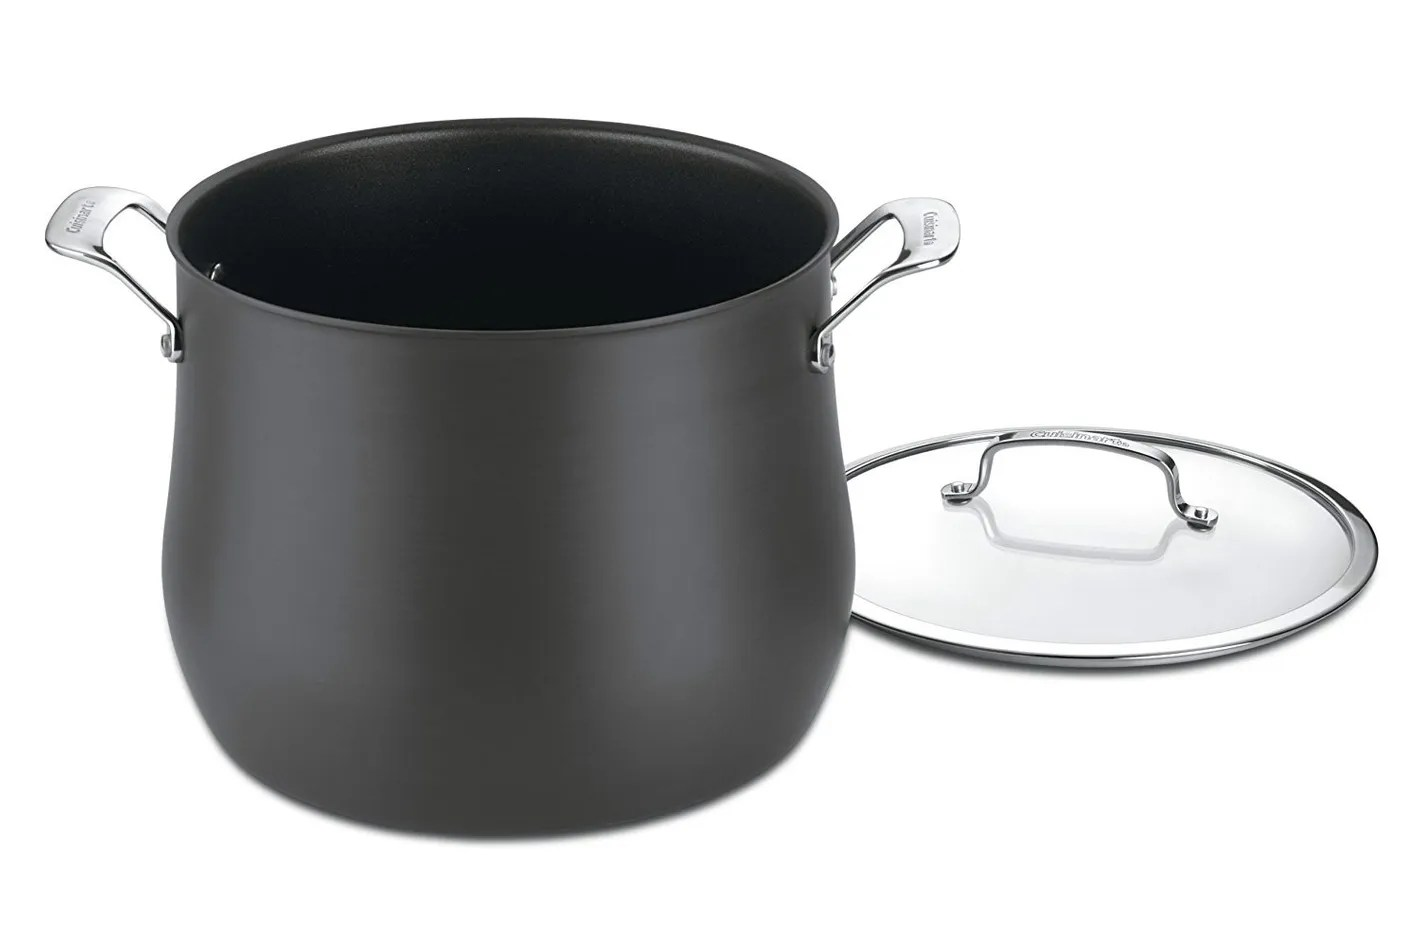 Big W Stock Pot Cuisinart 6466 26 Contour Hard Anodized 12 Quart Stockpot With Cover